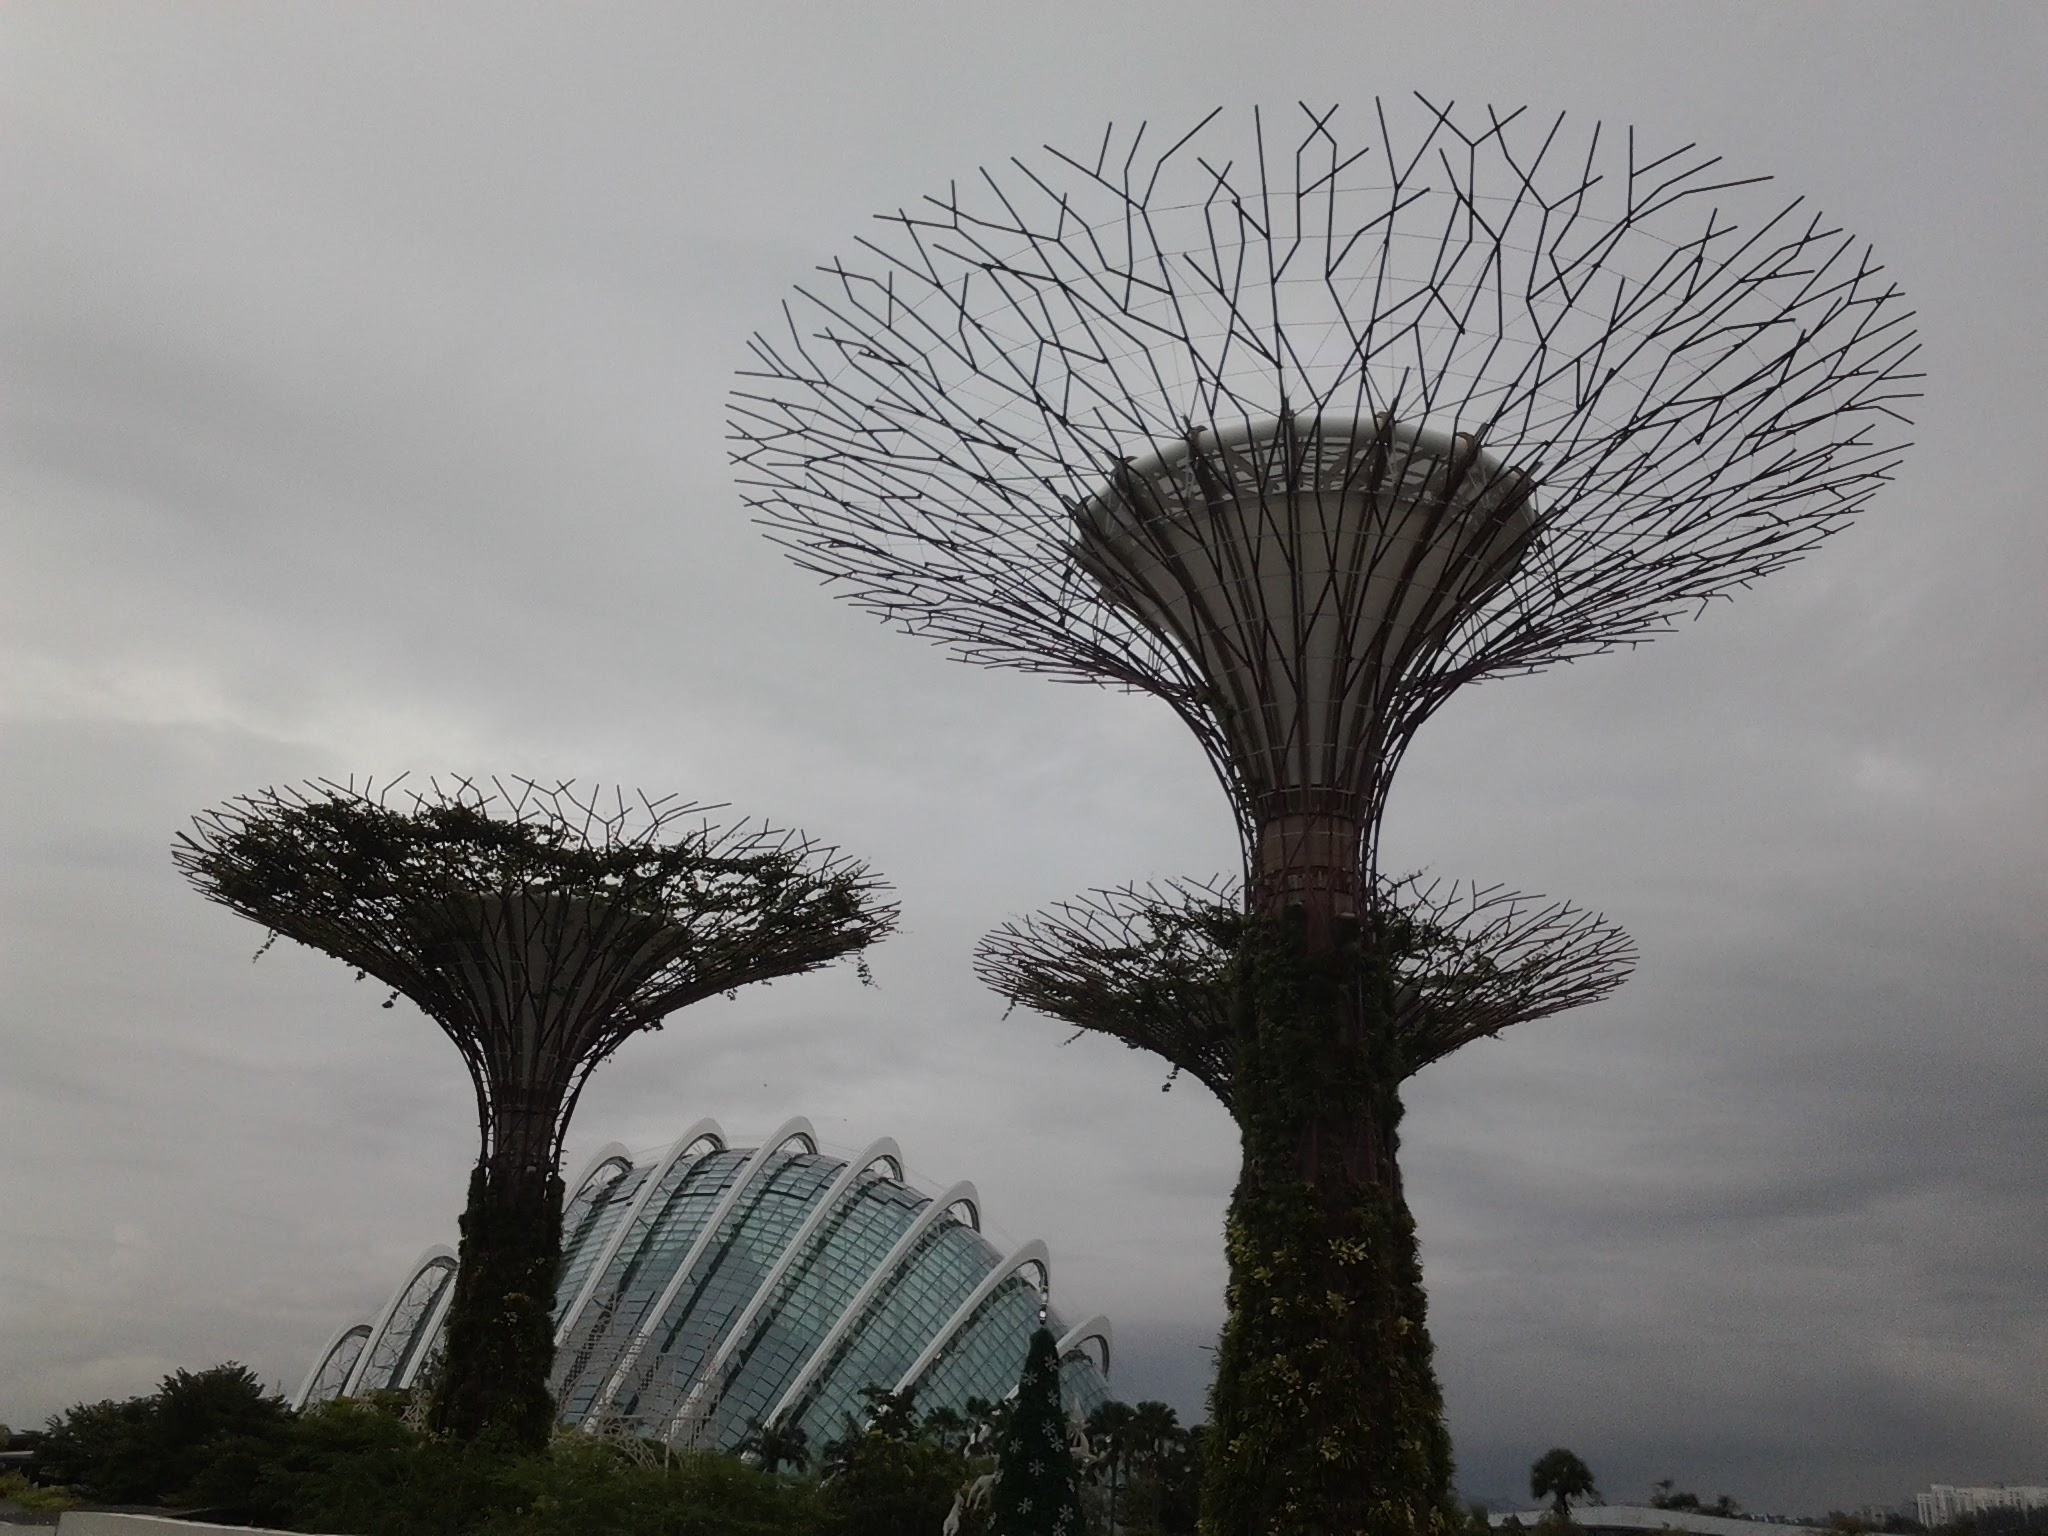 Gardens by the bay, Singapore. Loves this place